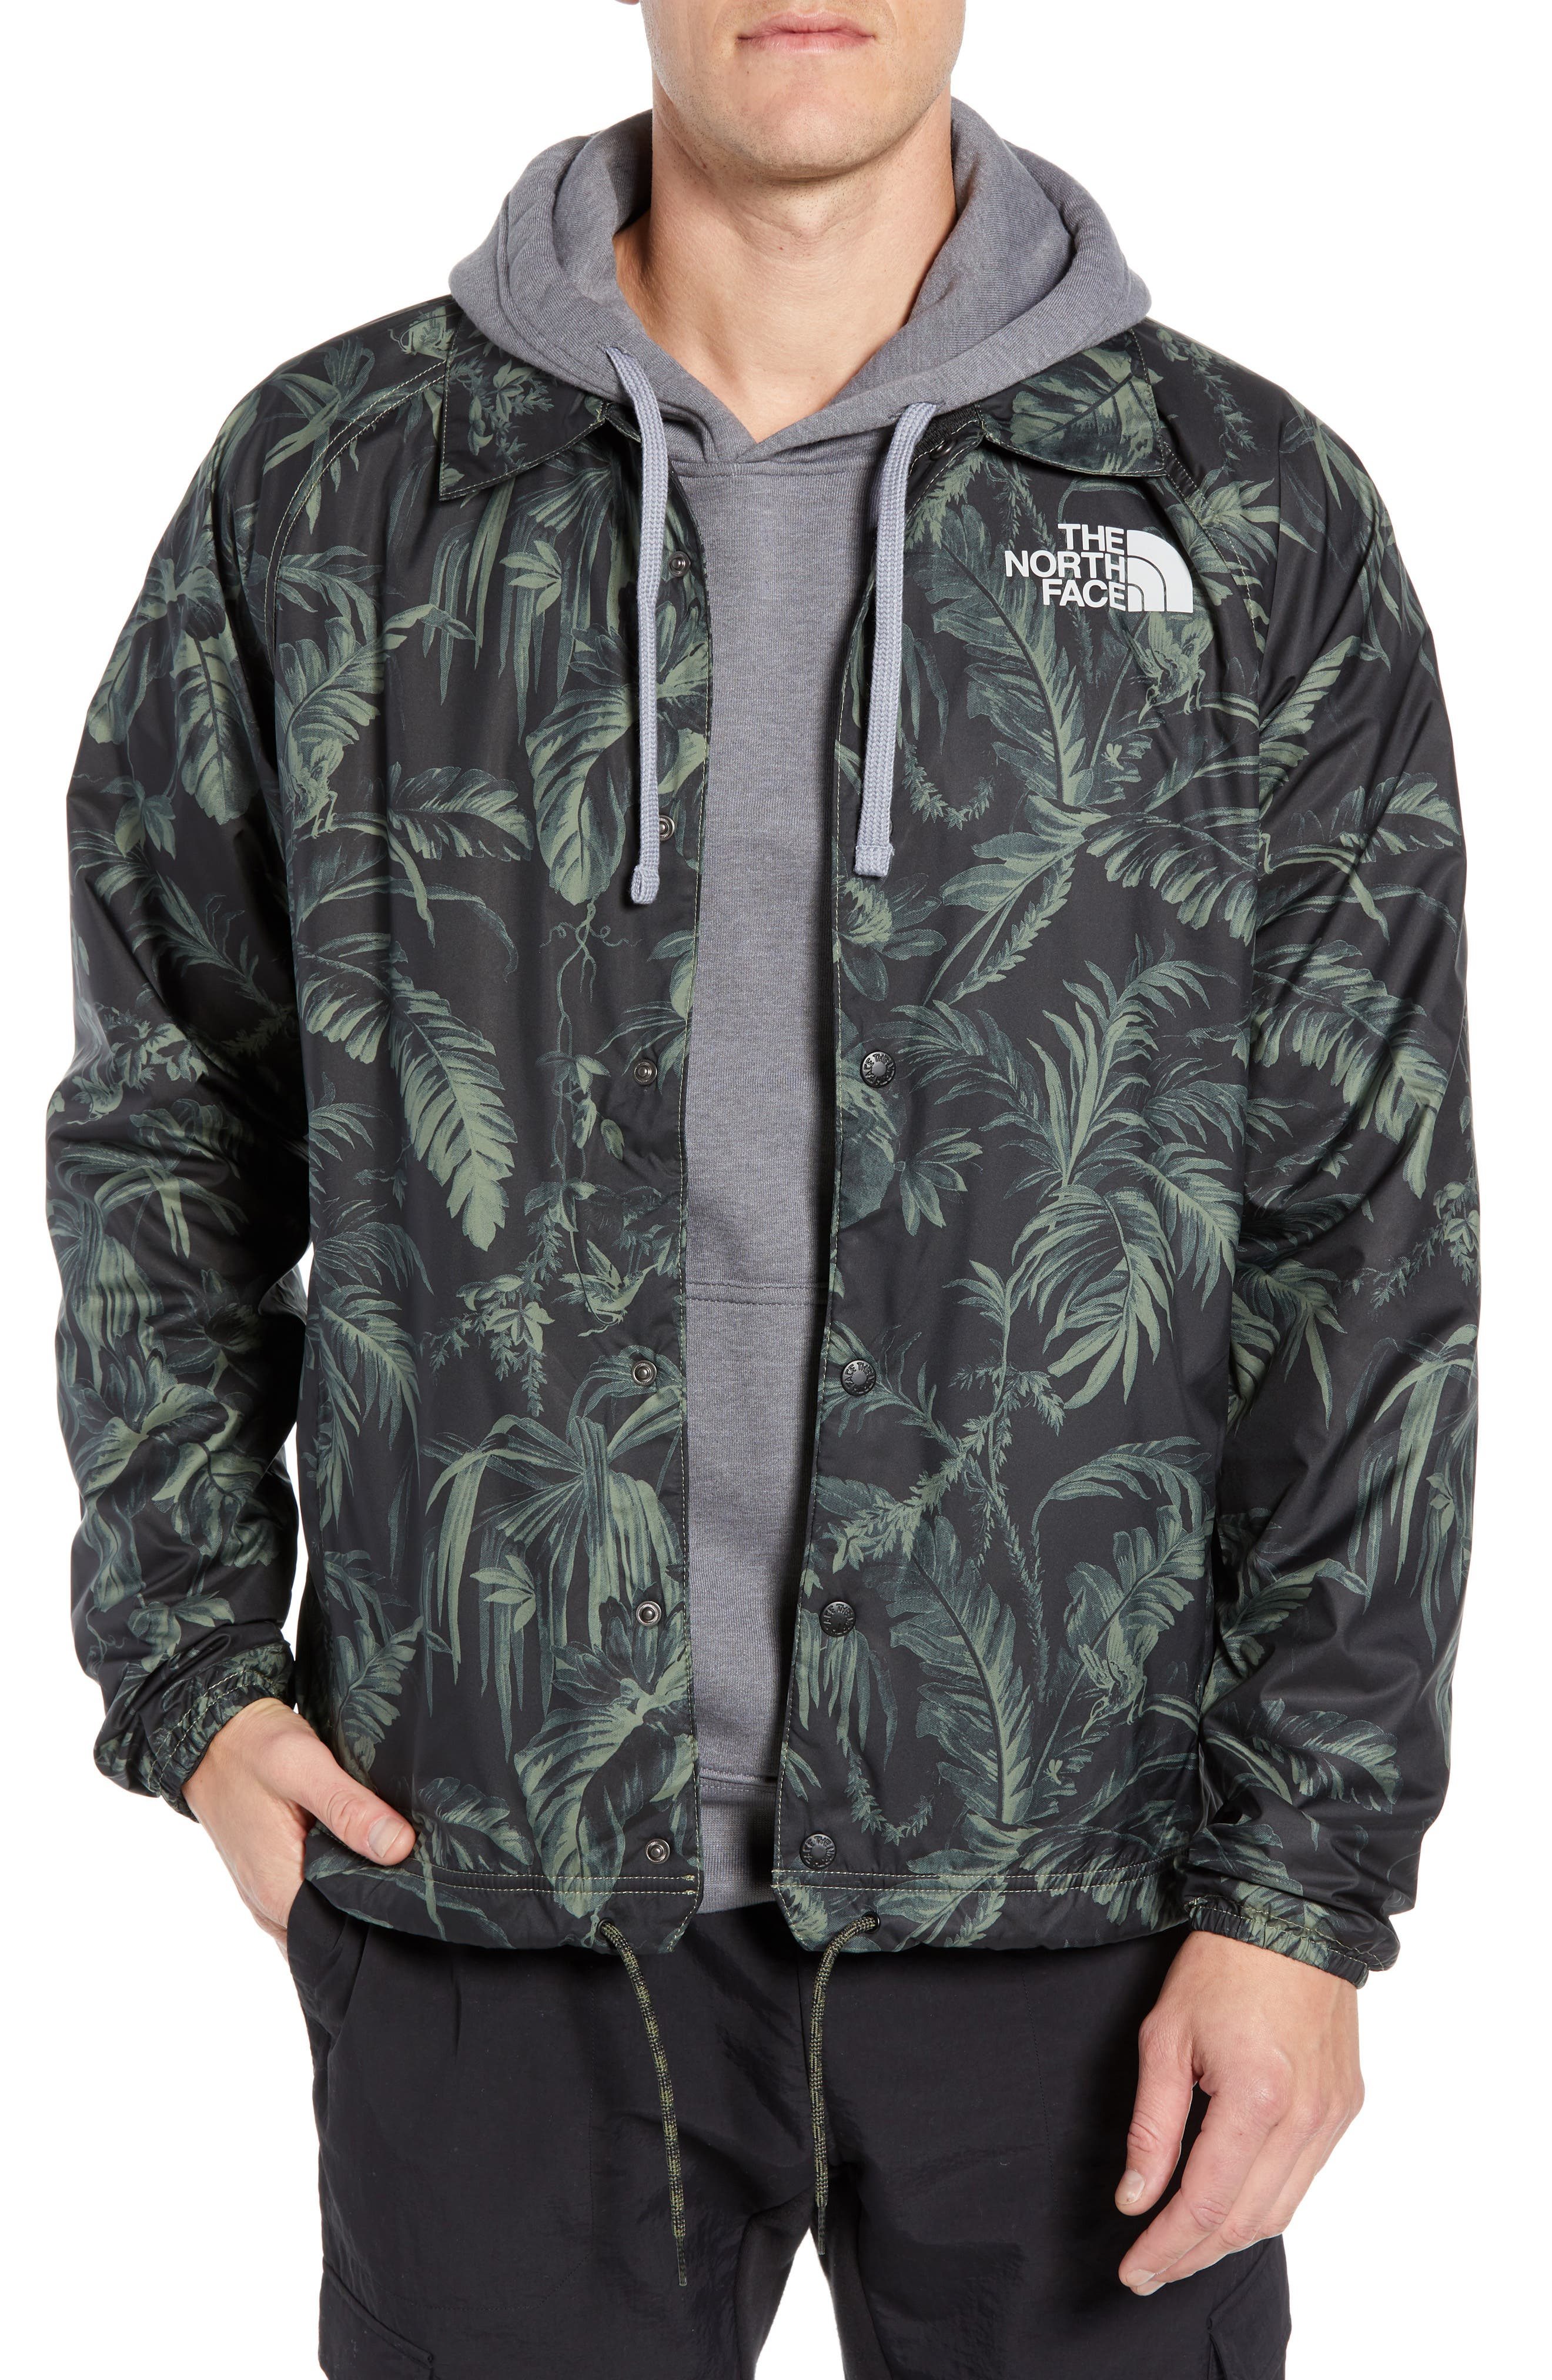 The North Face Regular Fit Water Resistant Coach